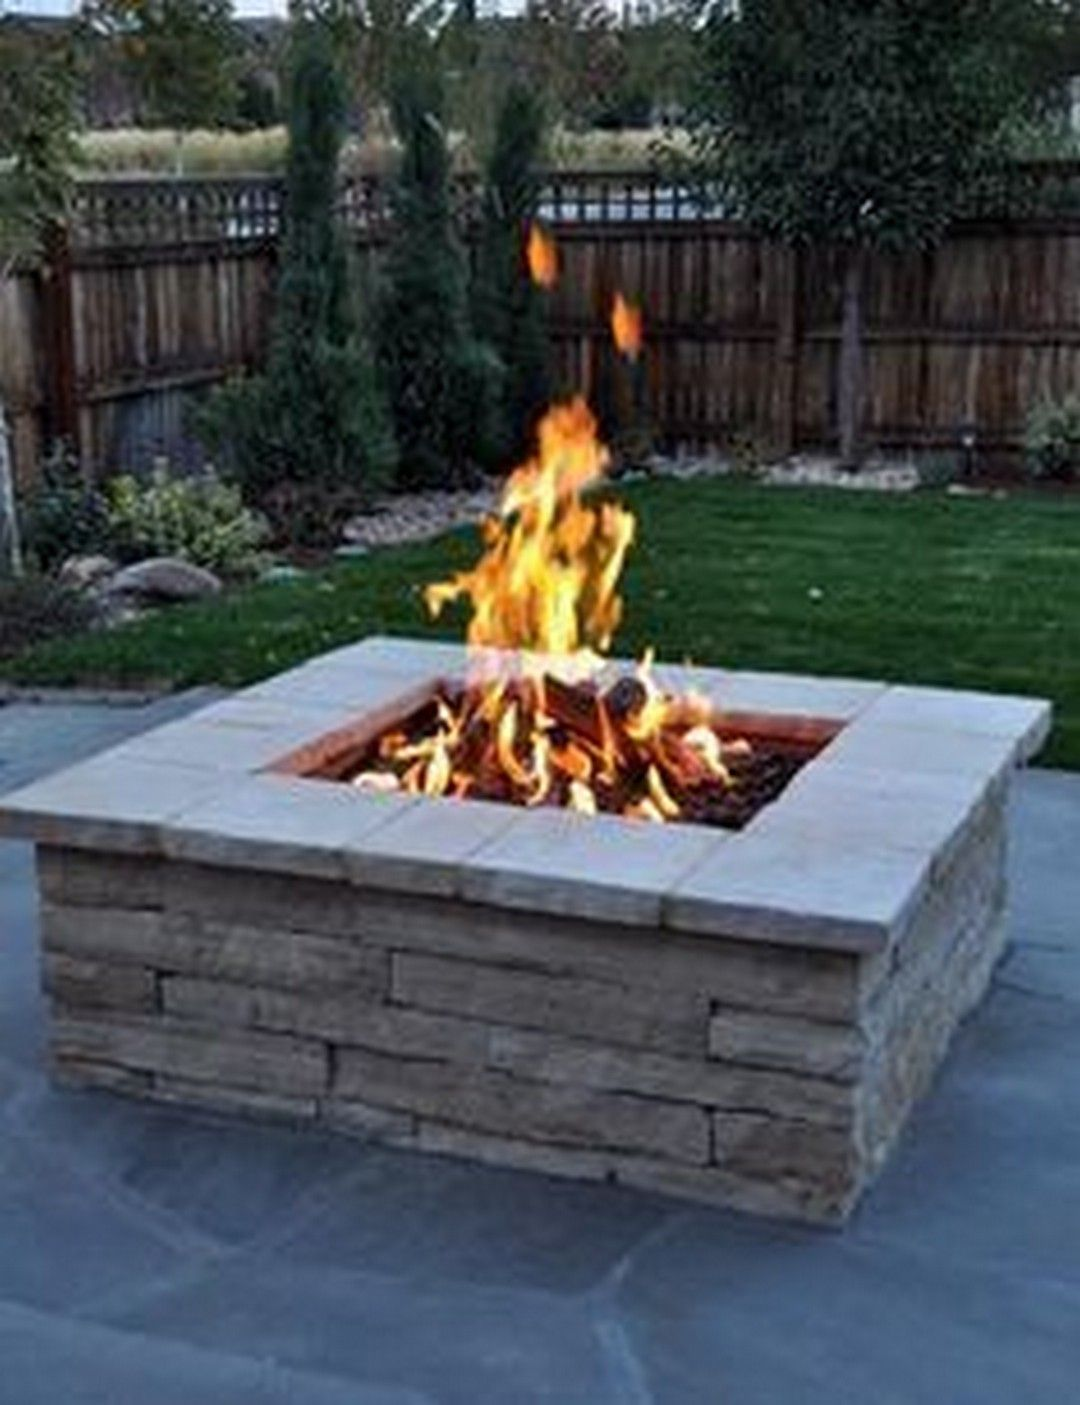 33 How to Build a DIY Backyard Fire Pit | Fire pit patio ...